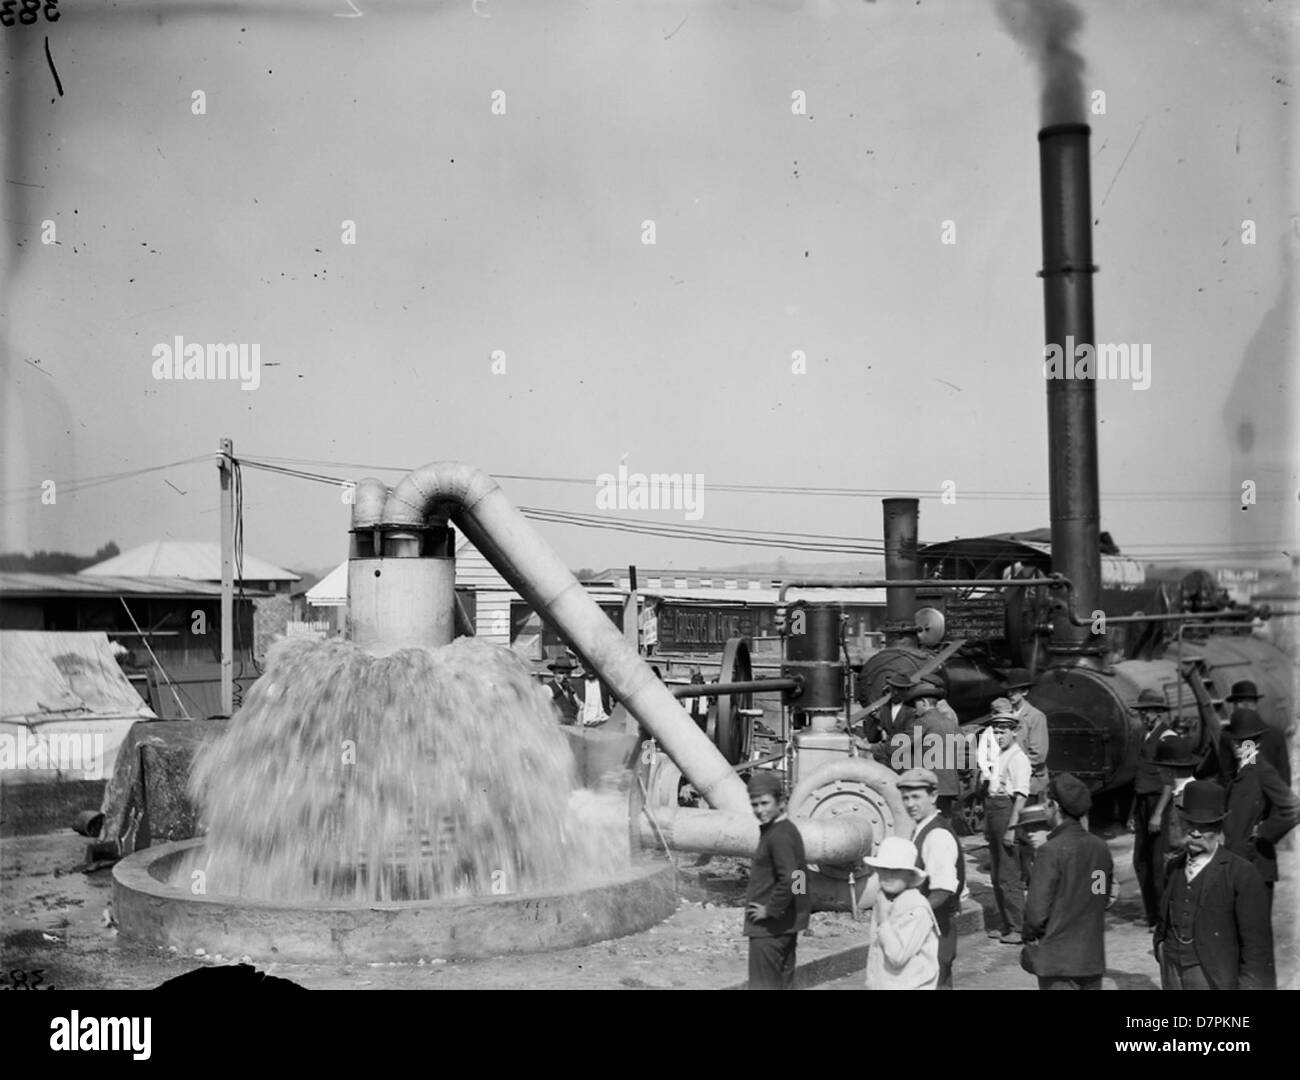 Clyde display, the Royal Easter Show - Stock Image